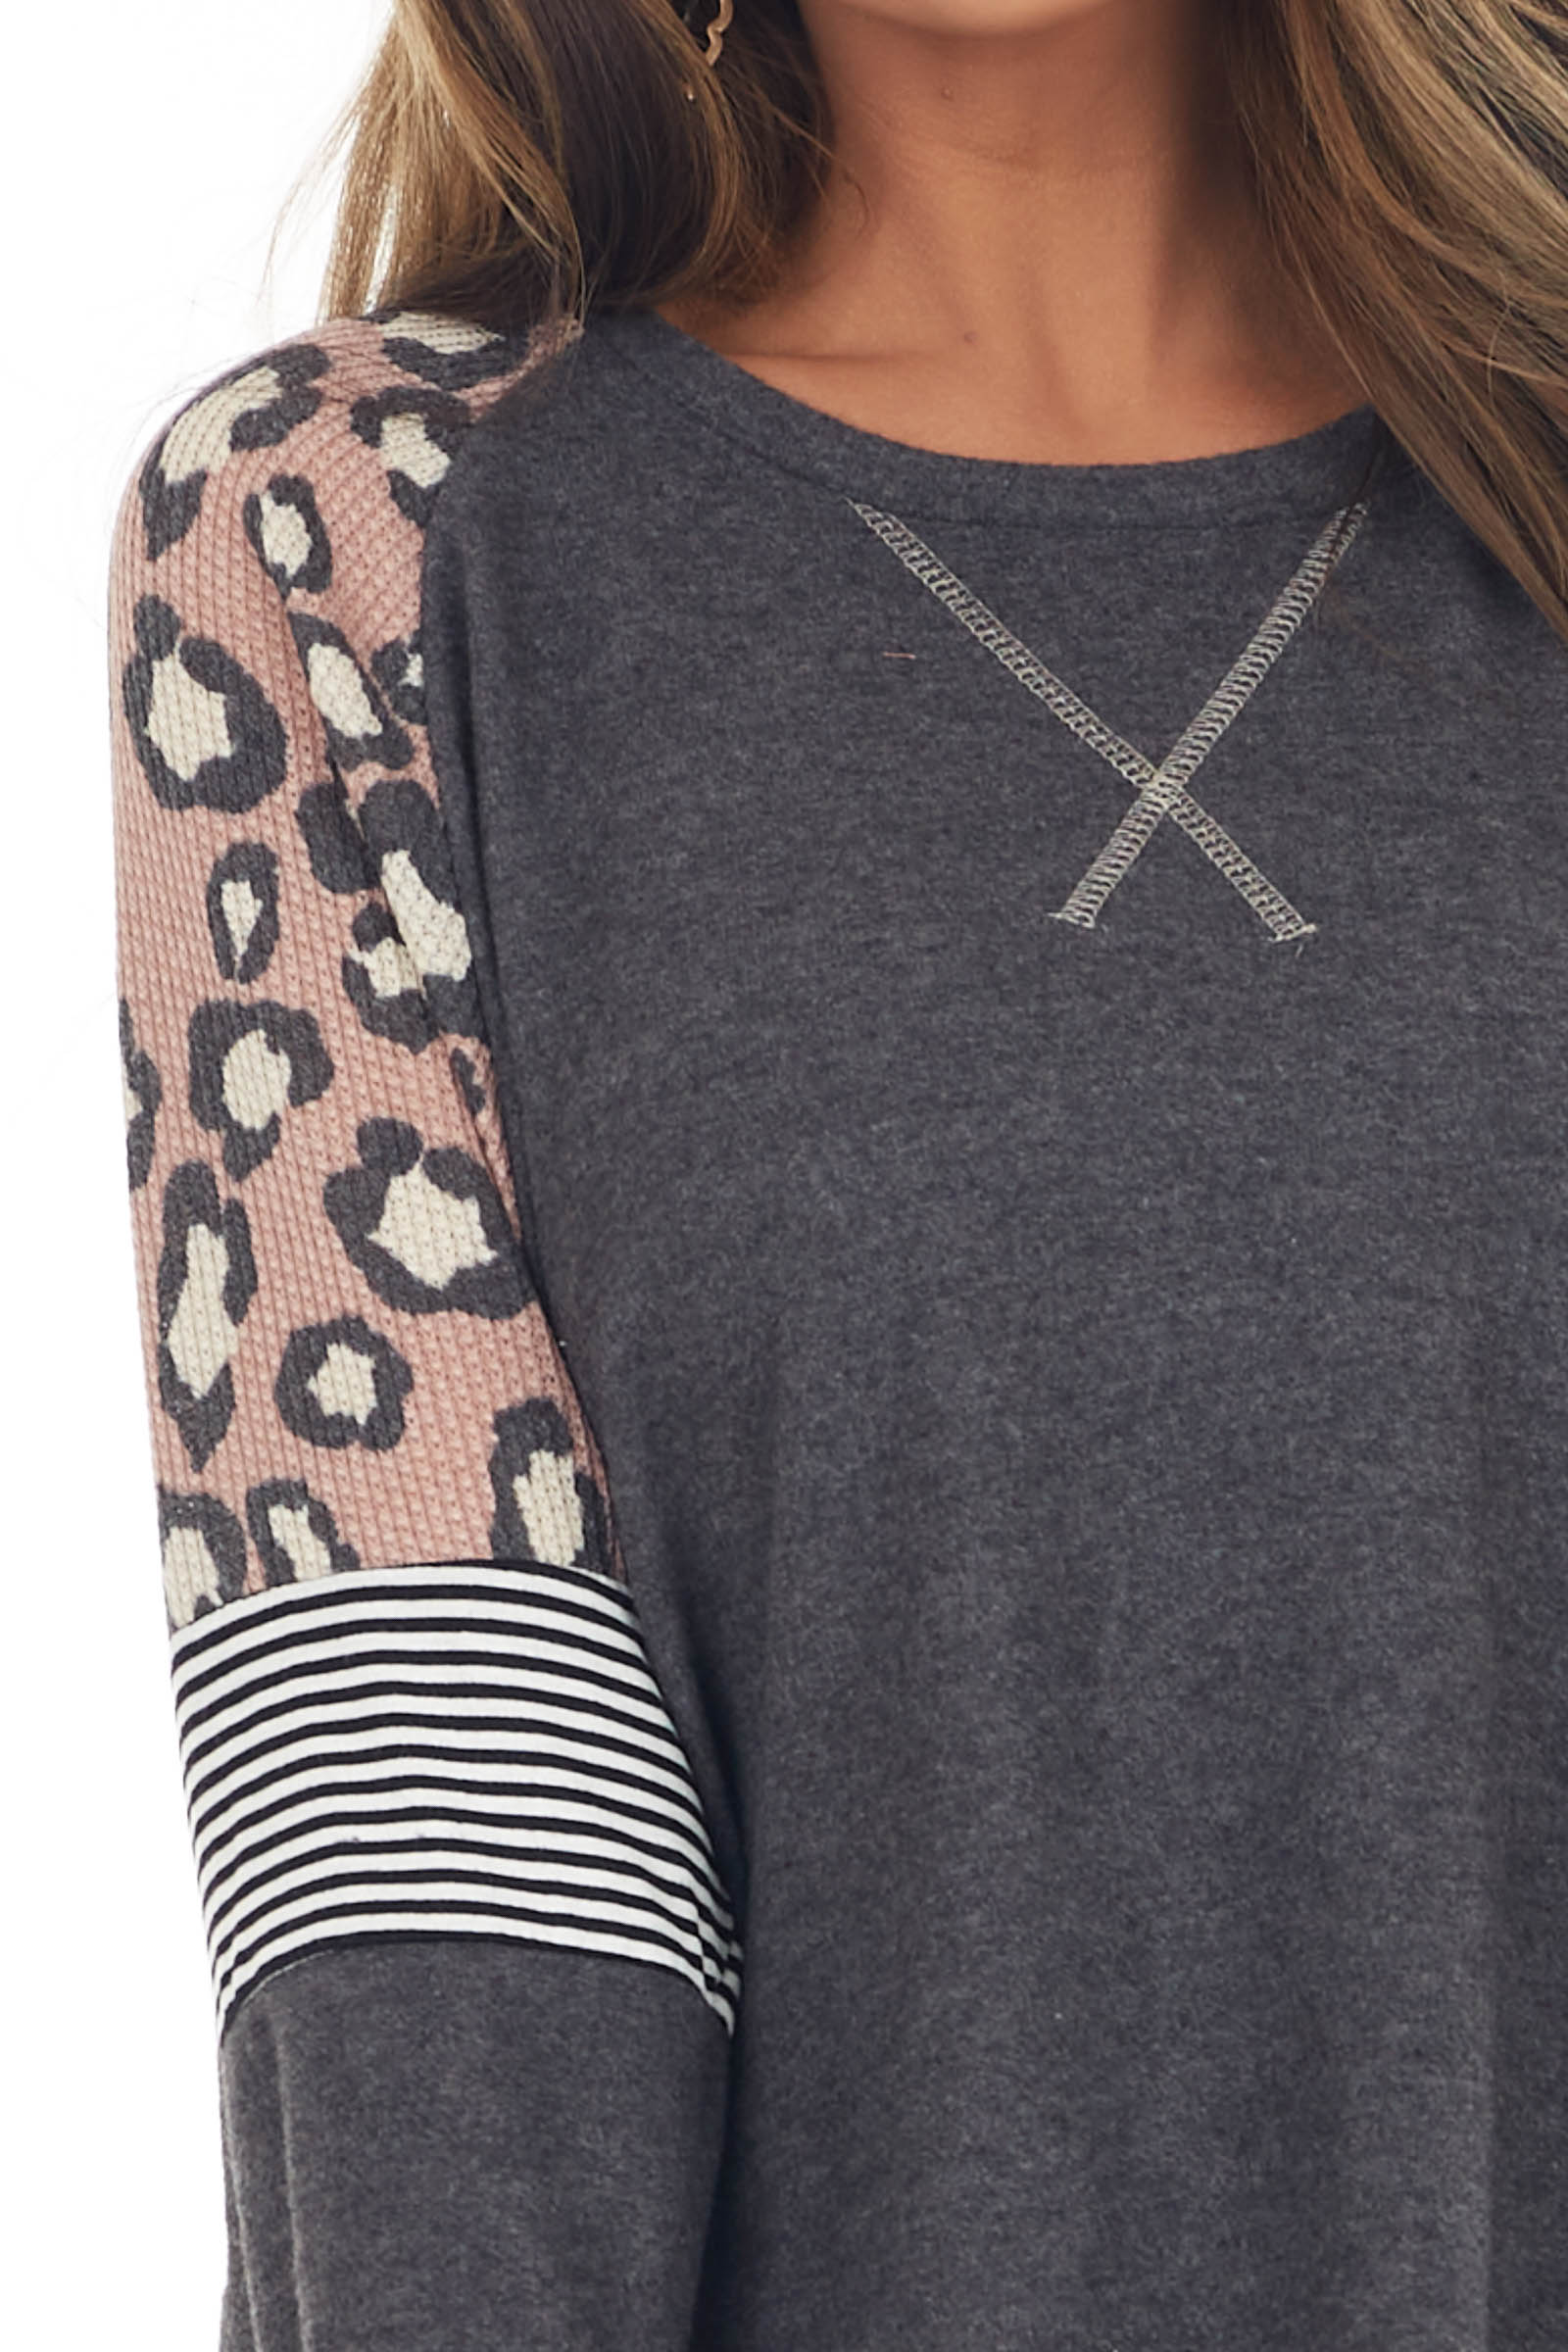 Charcoal Brushed Knit Top with Leopard and Stripe Contrast